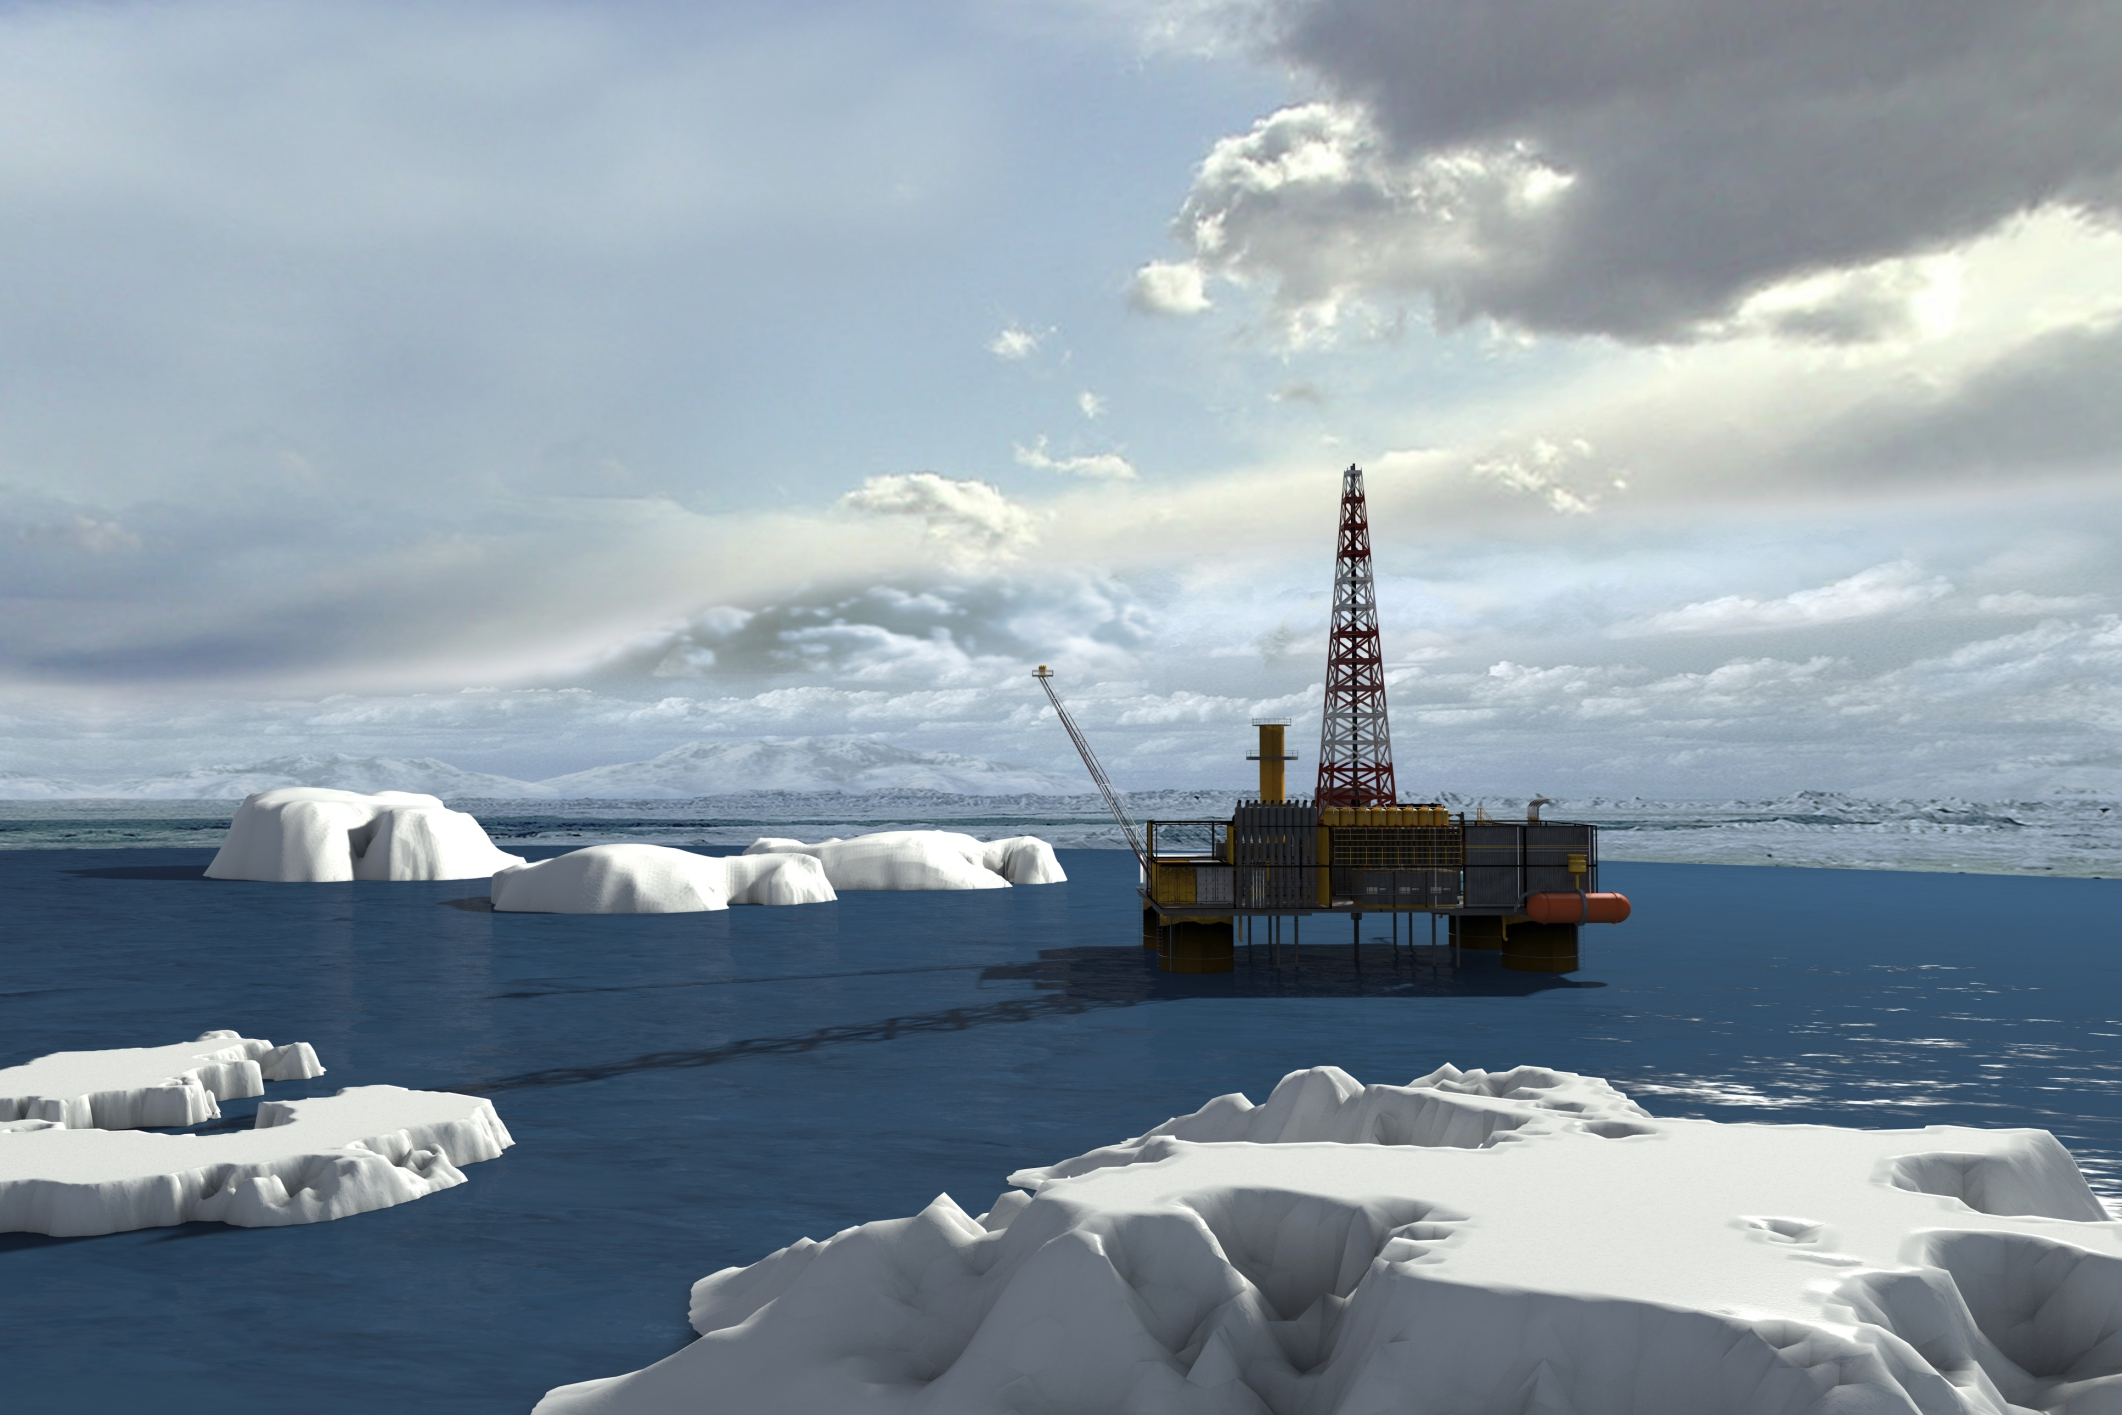 oil drilling in the arctic The arctic is the final frontier of the oil era overused oil fields around the planet are dwindling, tempting energy firms to tap the top of the planet despite its hostile environment an estimated 13 percent of earth's undiscovered oil lies underneath the arctic, totaling about 90 billion barrels at our current rate of.